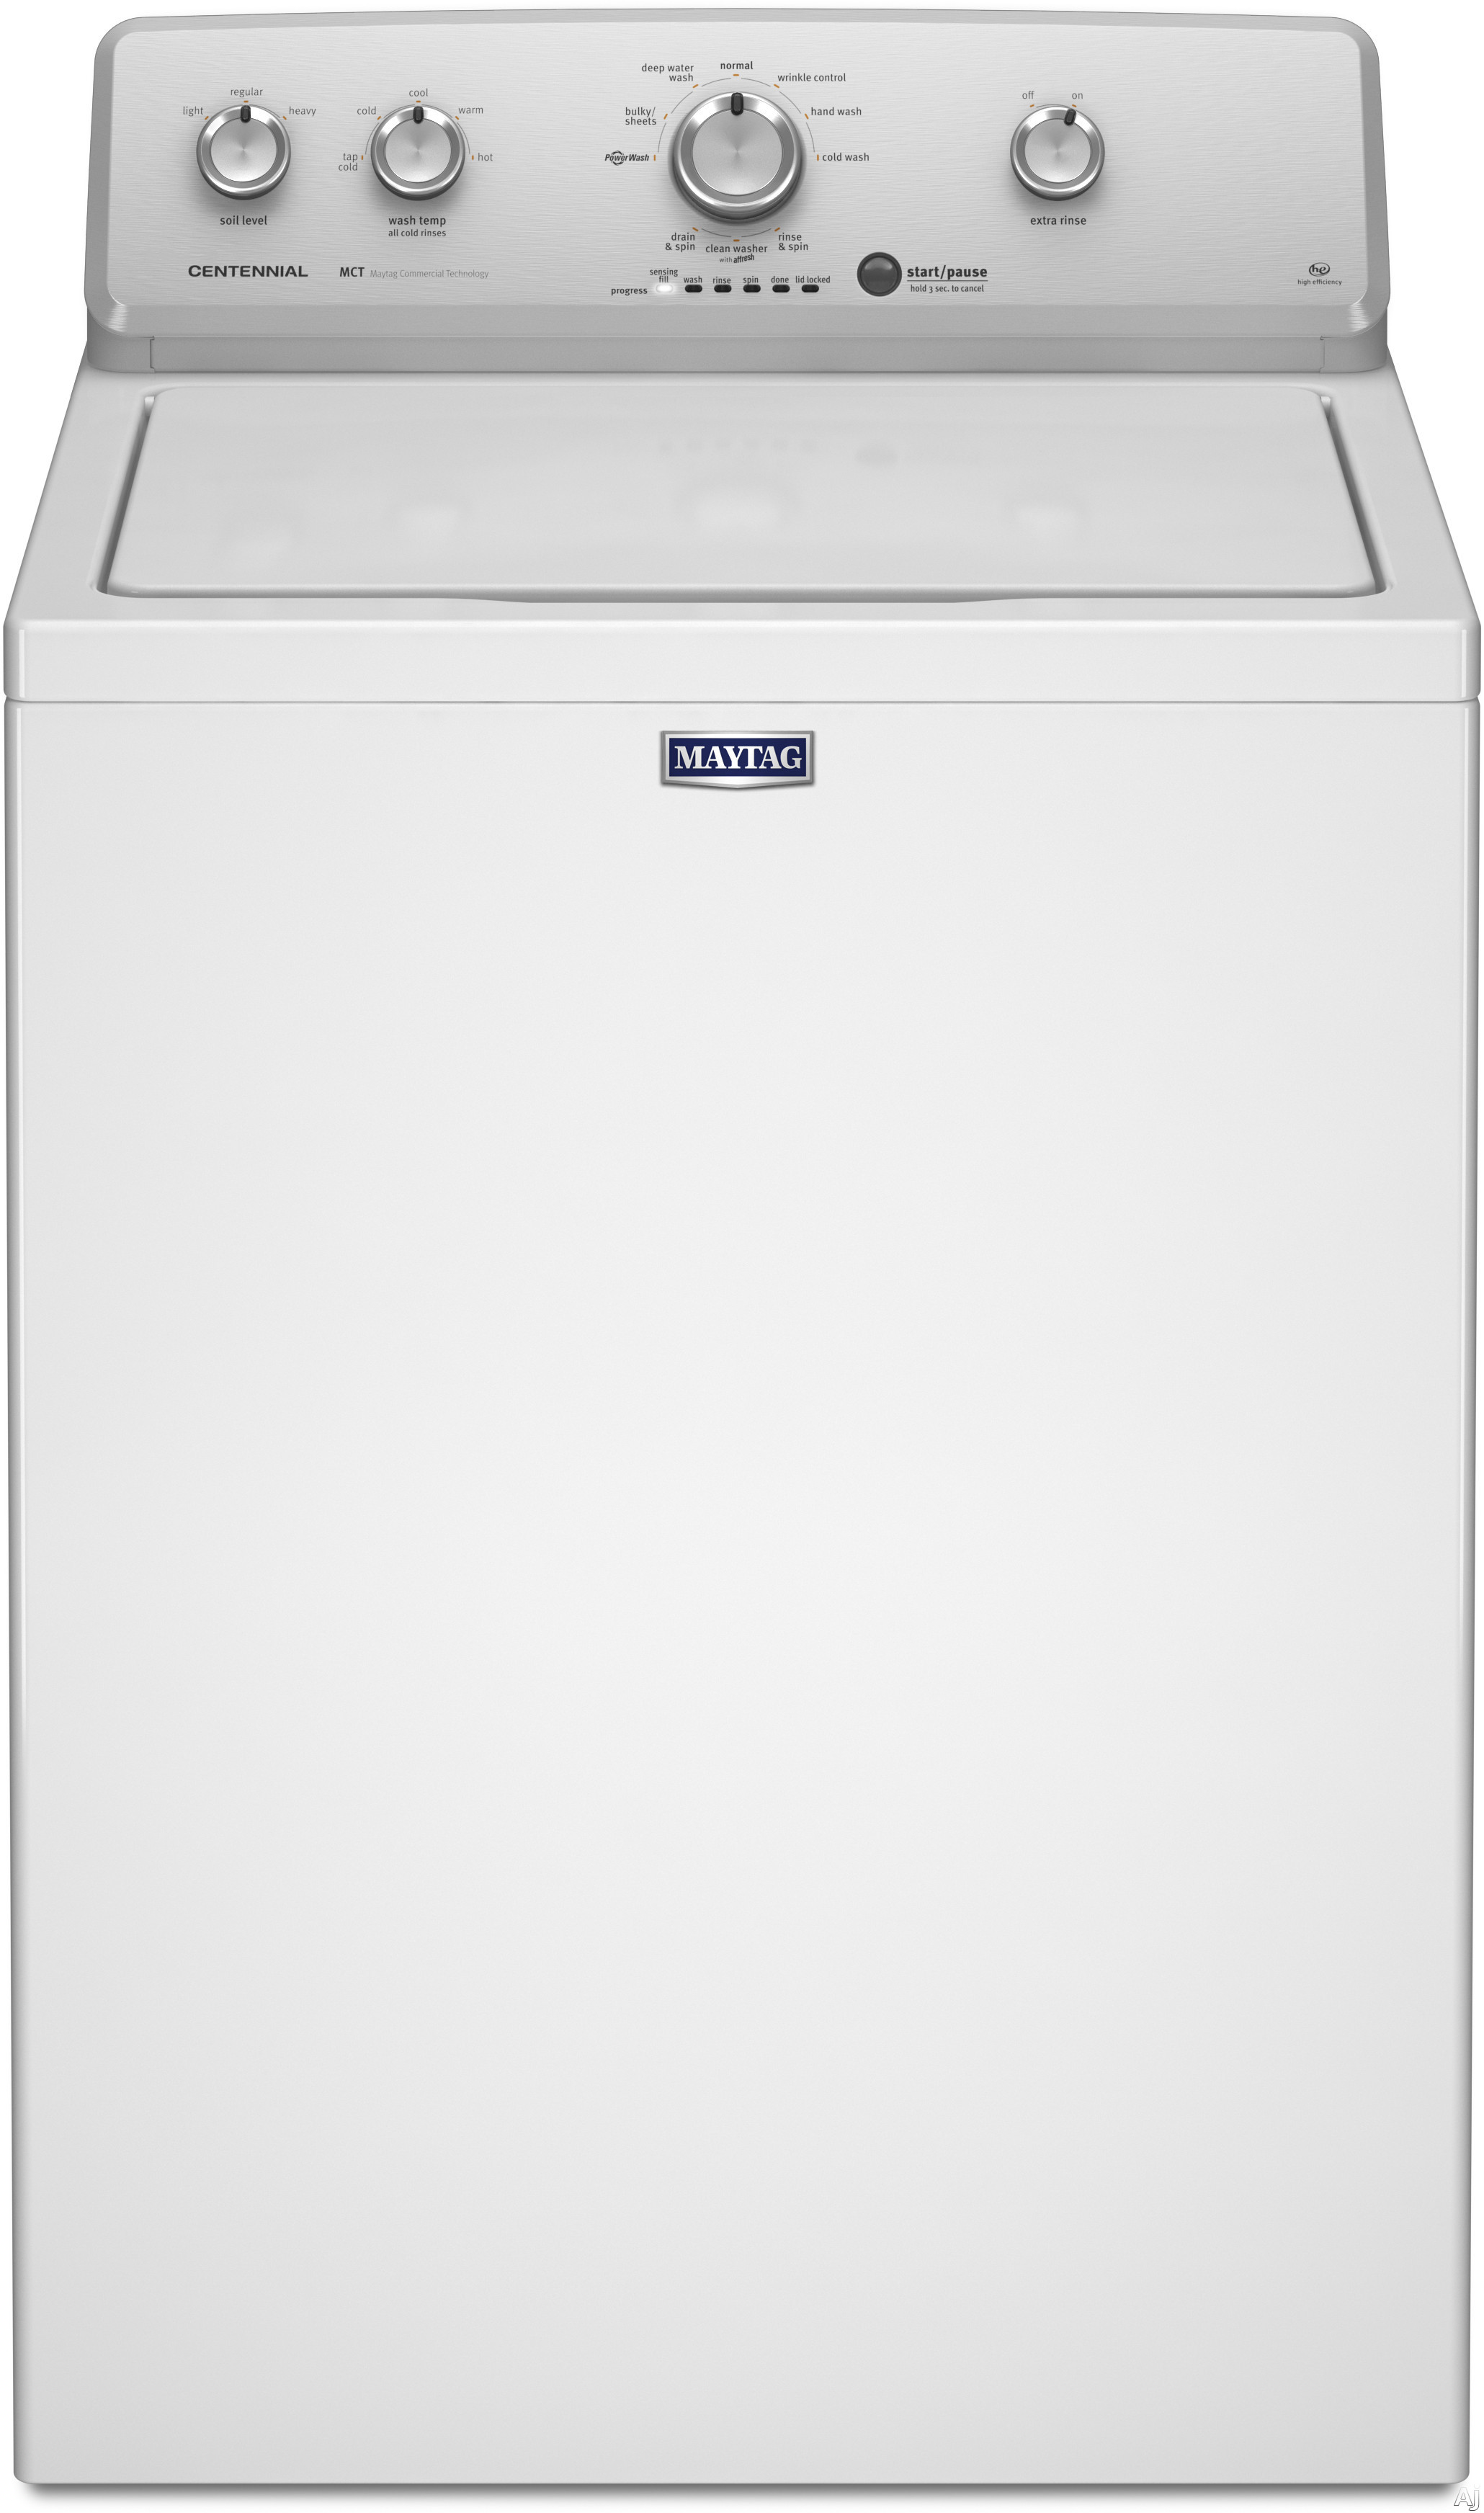 Maytag Mvwc215ew 27 Quot Top Load Washer With 3 5 Cu Ft Capacity 11 Wash